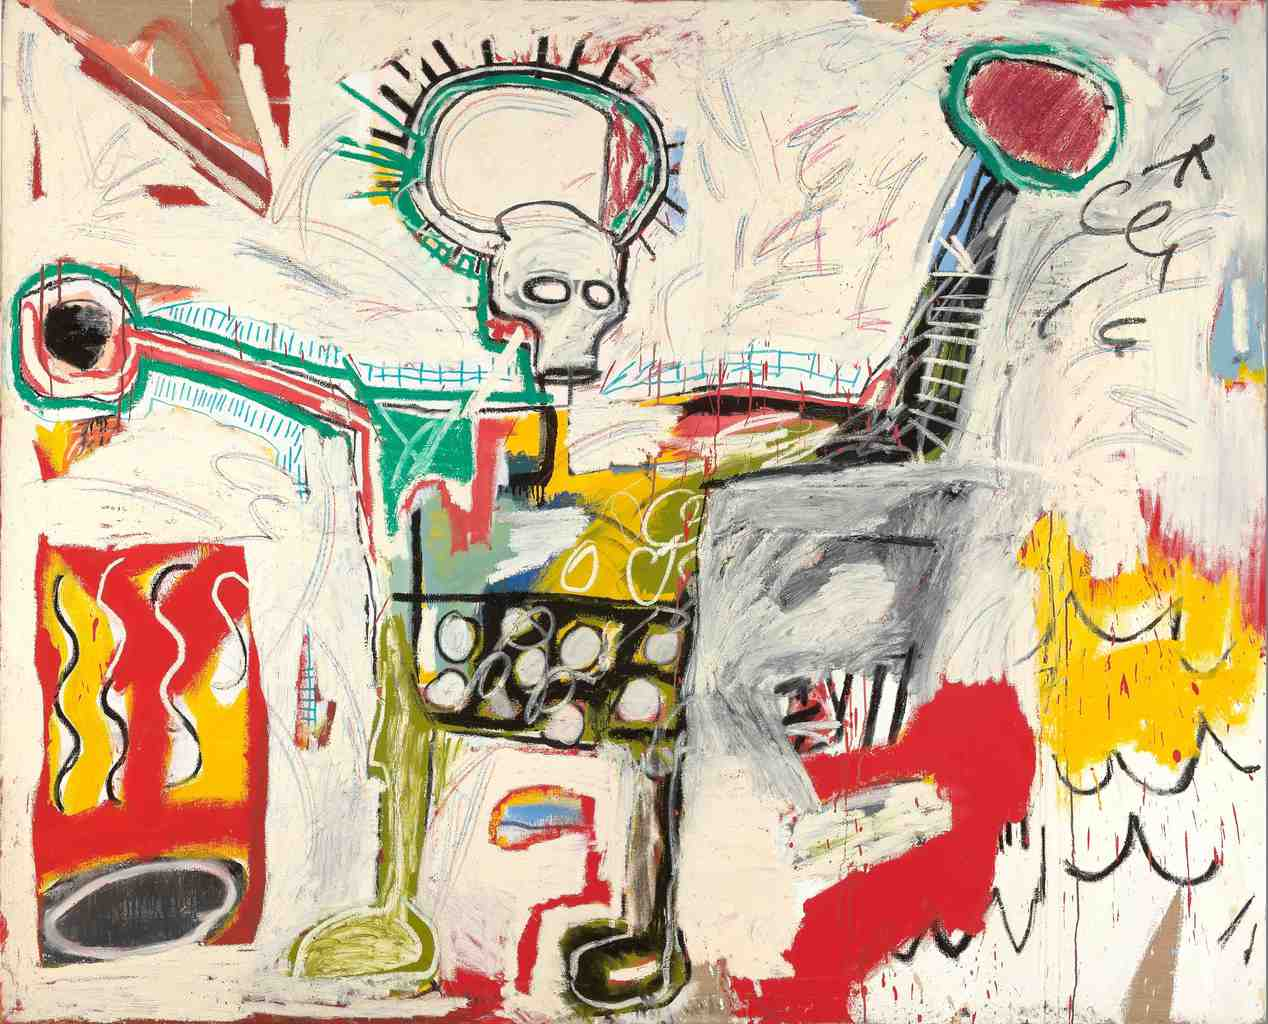 Jean-Michel Basquiat 'Untitled 1982'